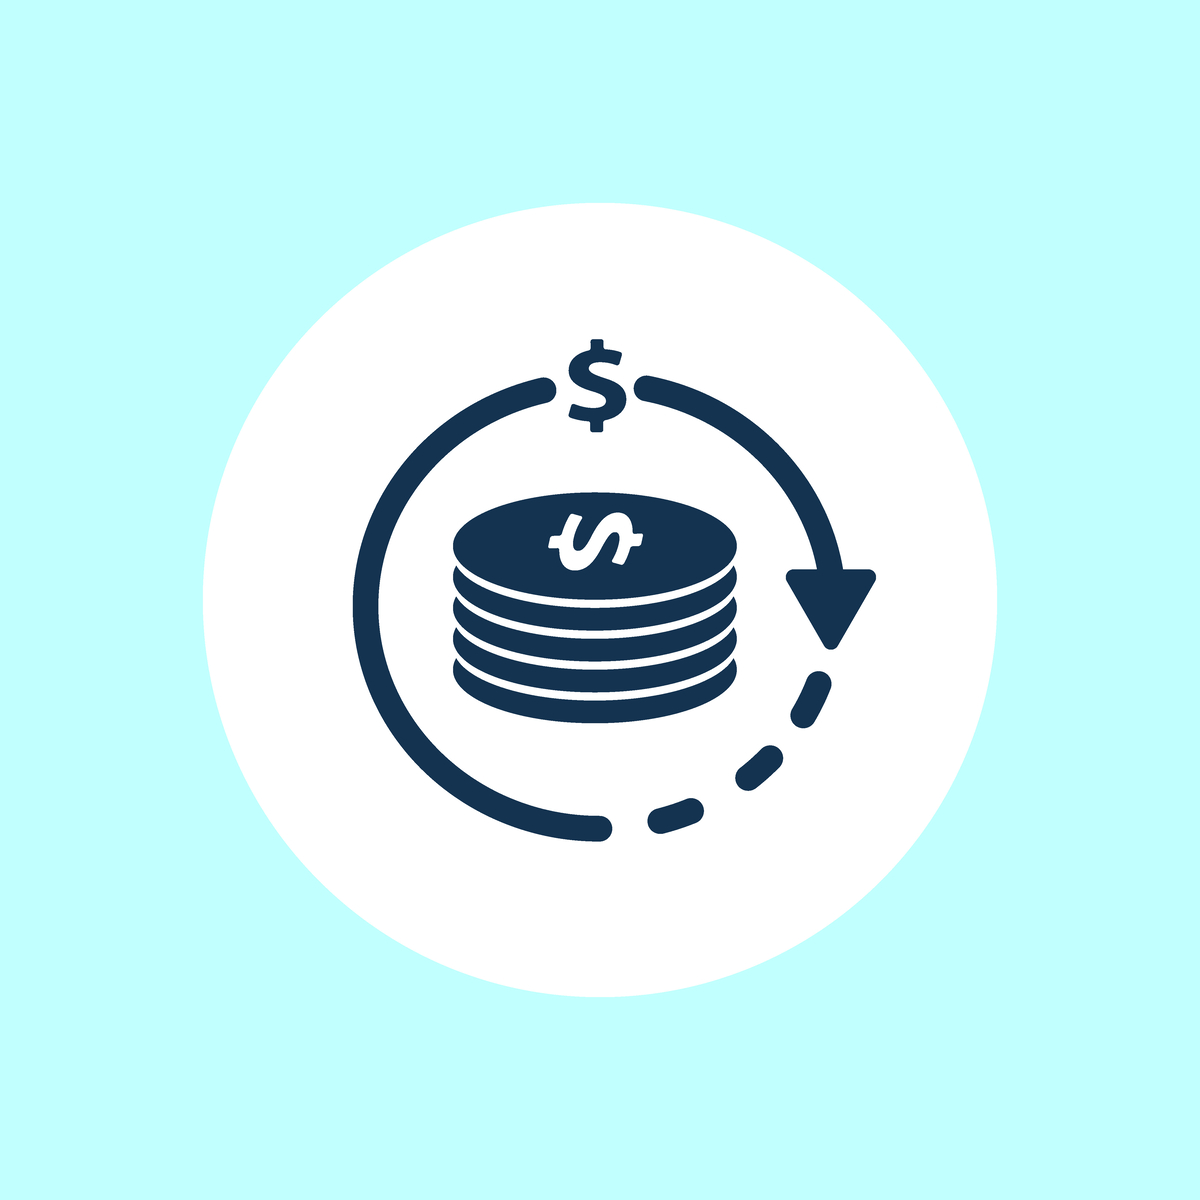 Illustration of a pile of coins with an arrow going around them.